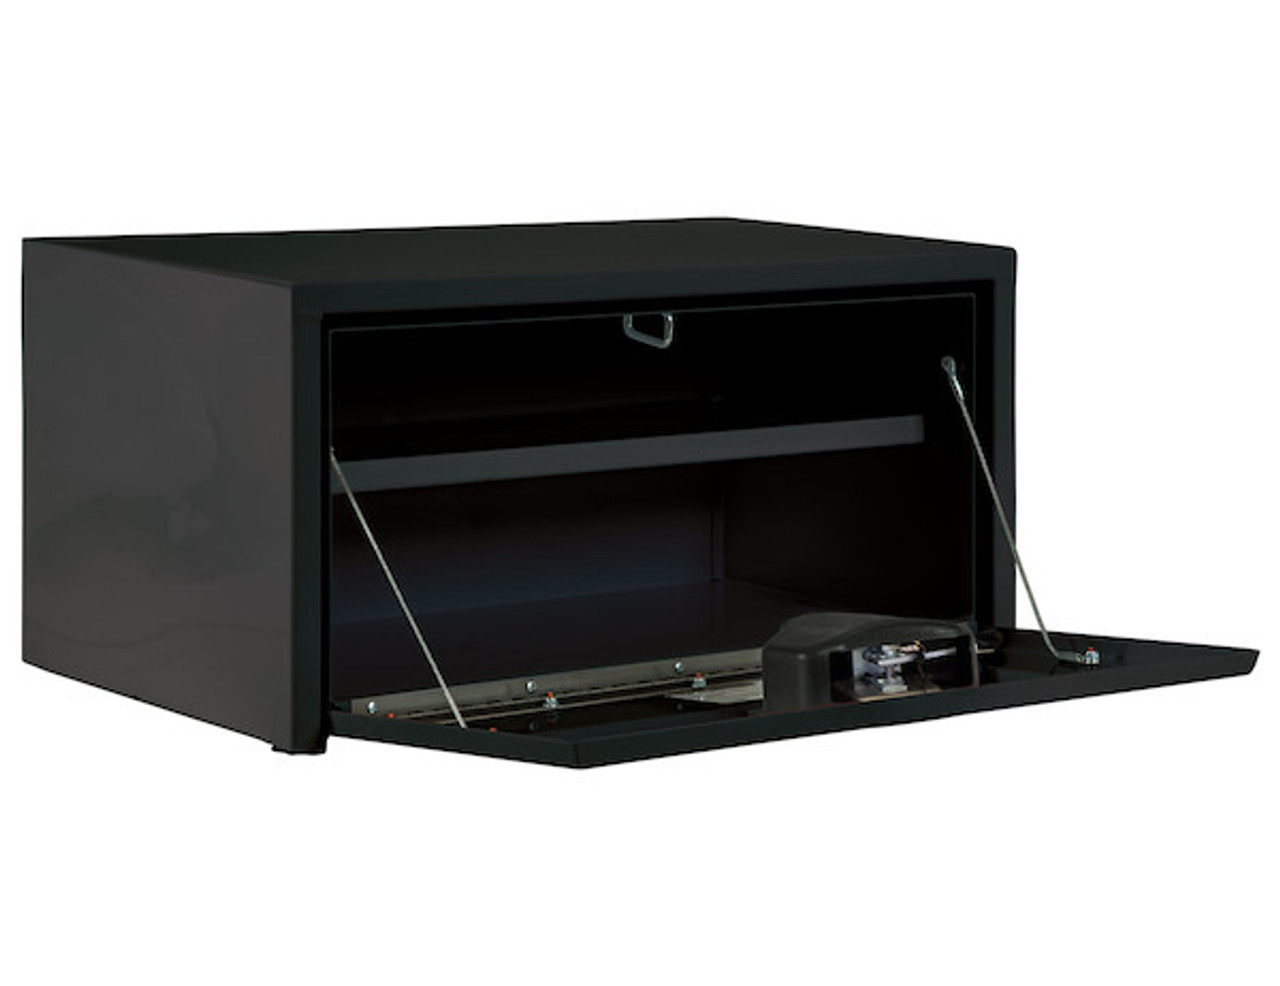 "1703304 BUYERS PRODUCTS BLACK STEEL UNDERBODY TRUCK TOOL BOX WITH BUILT-IN SHELF 14""HX16""DX30""W Picture # 2"